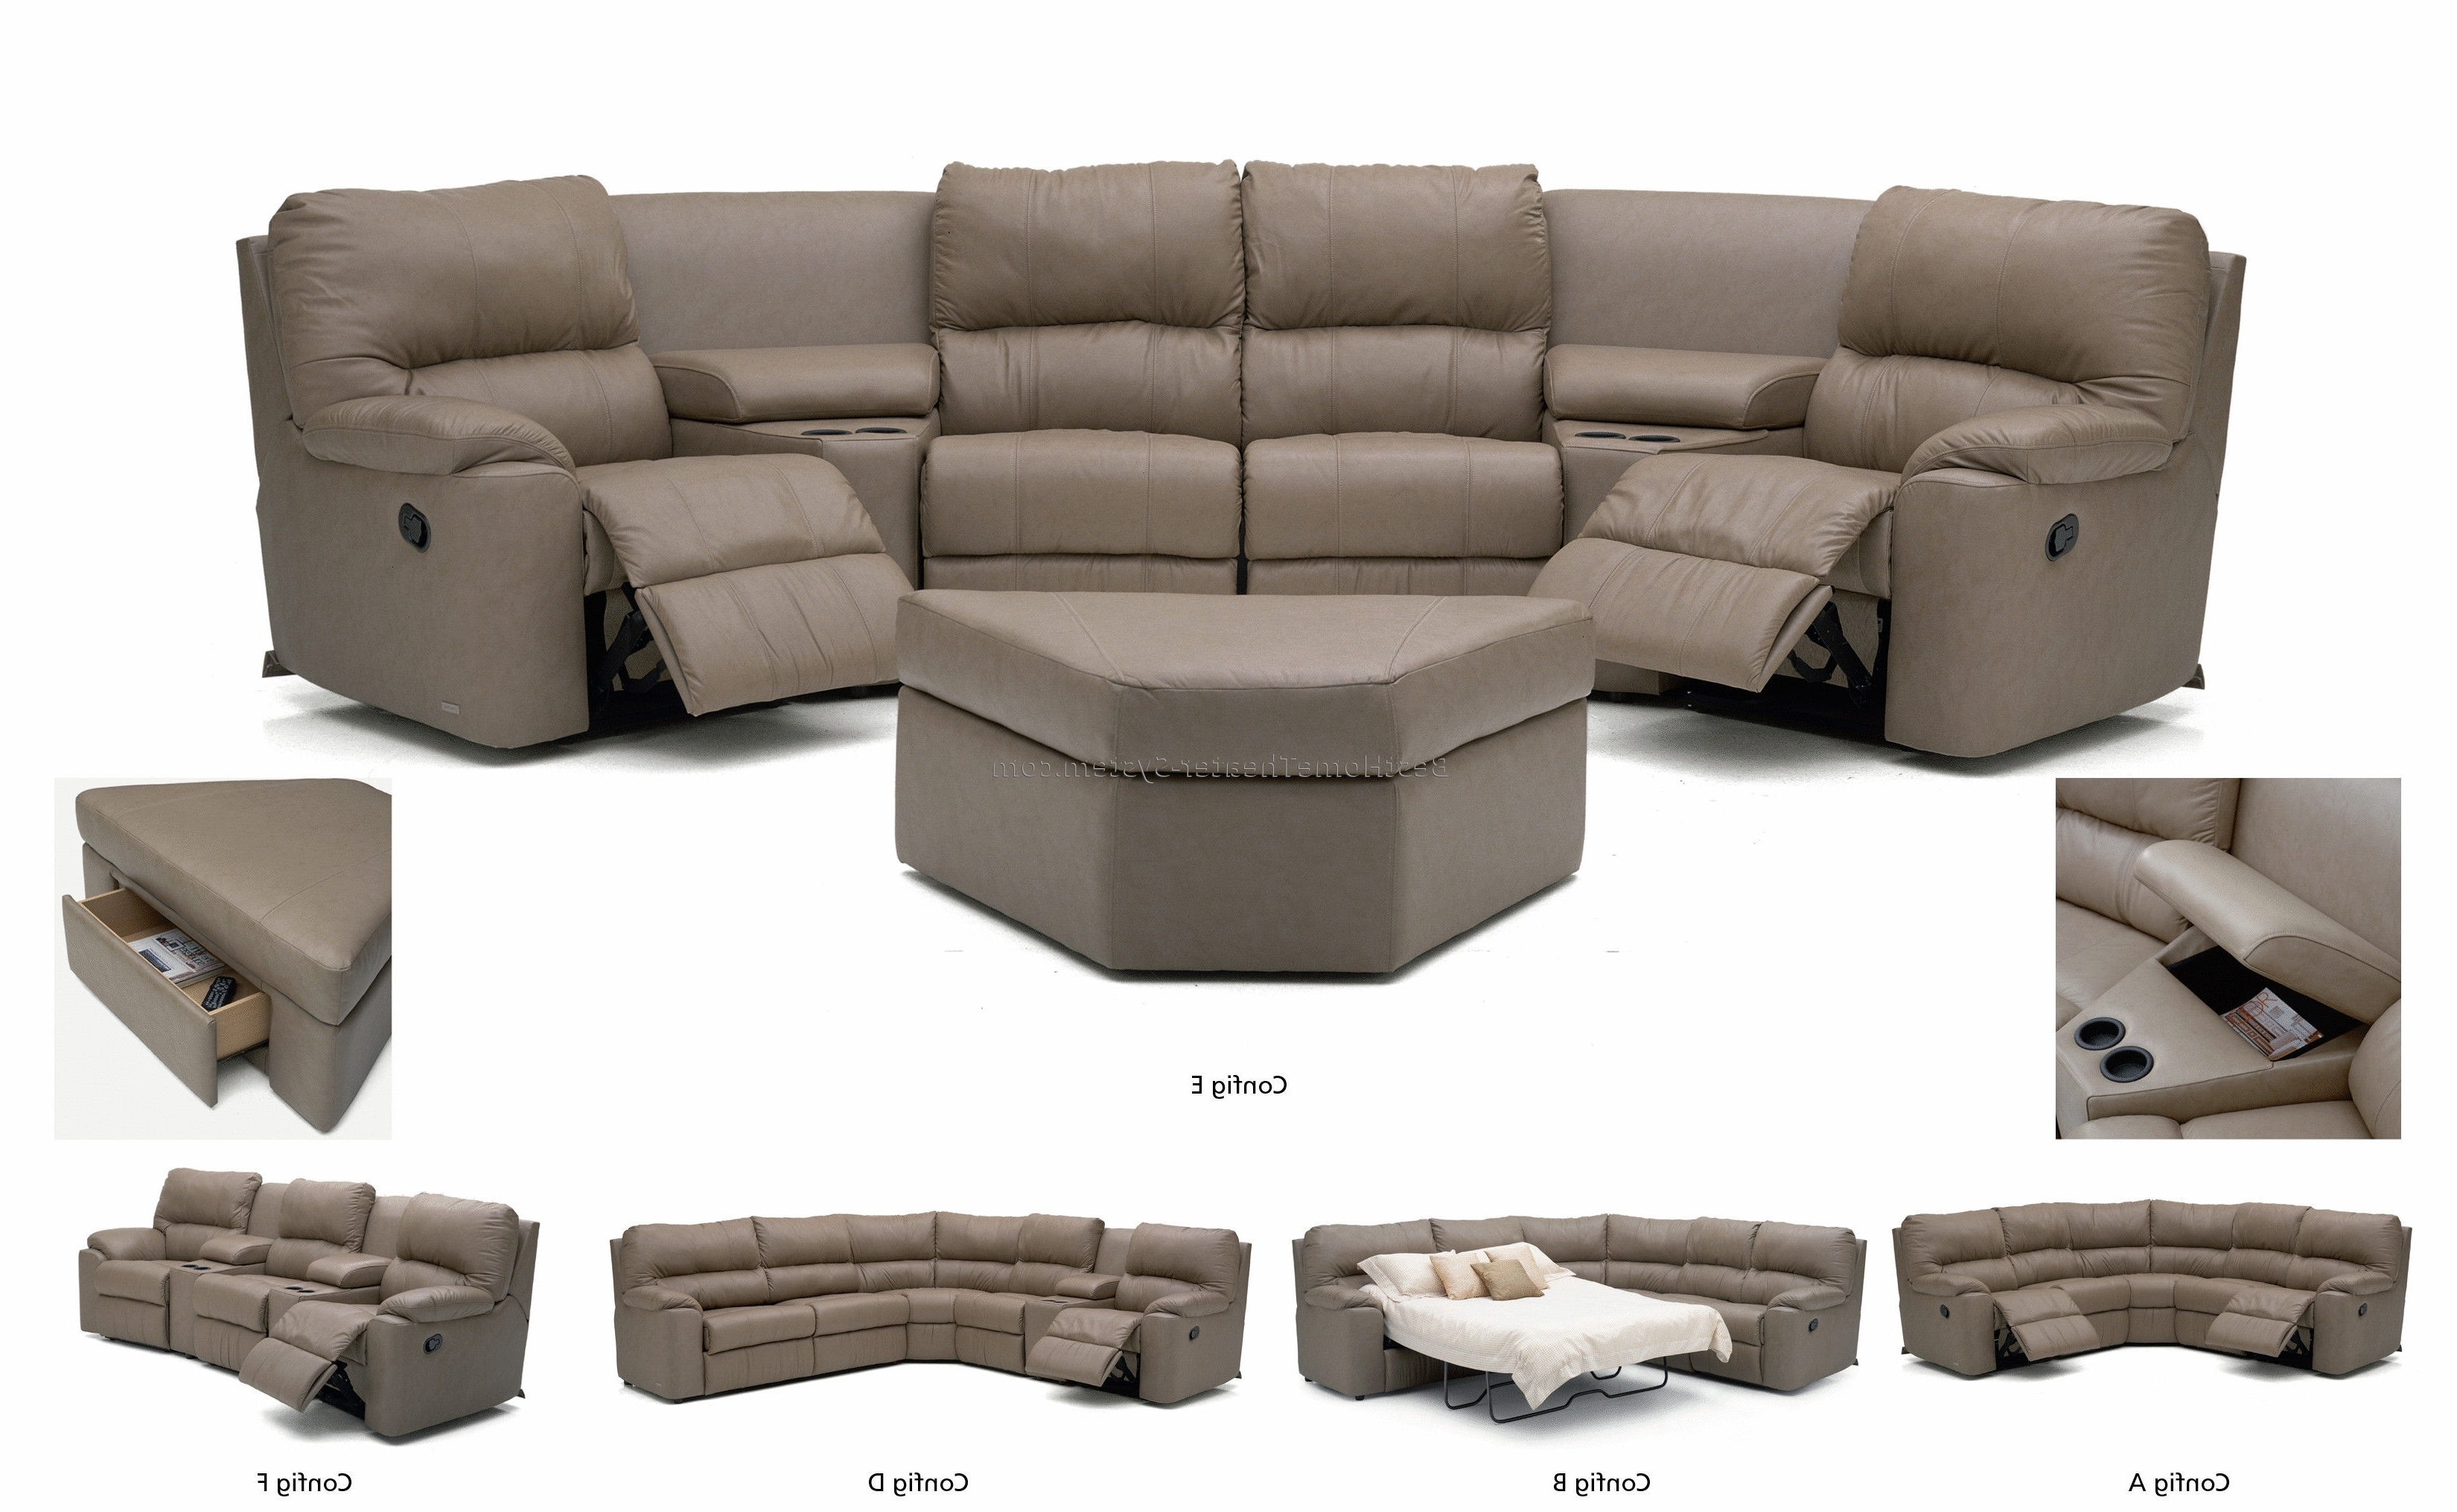 Best Home Theater Systems In Most Current 2 Seat Sectional Sofas (View 12 of 15)